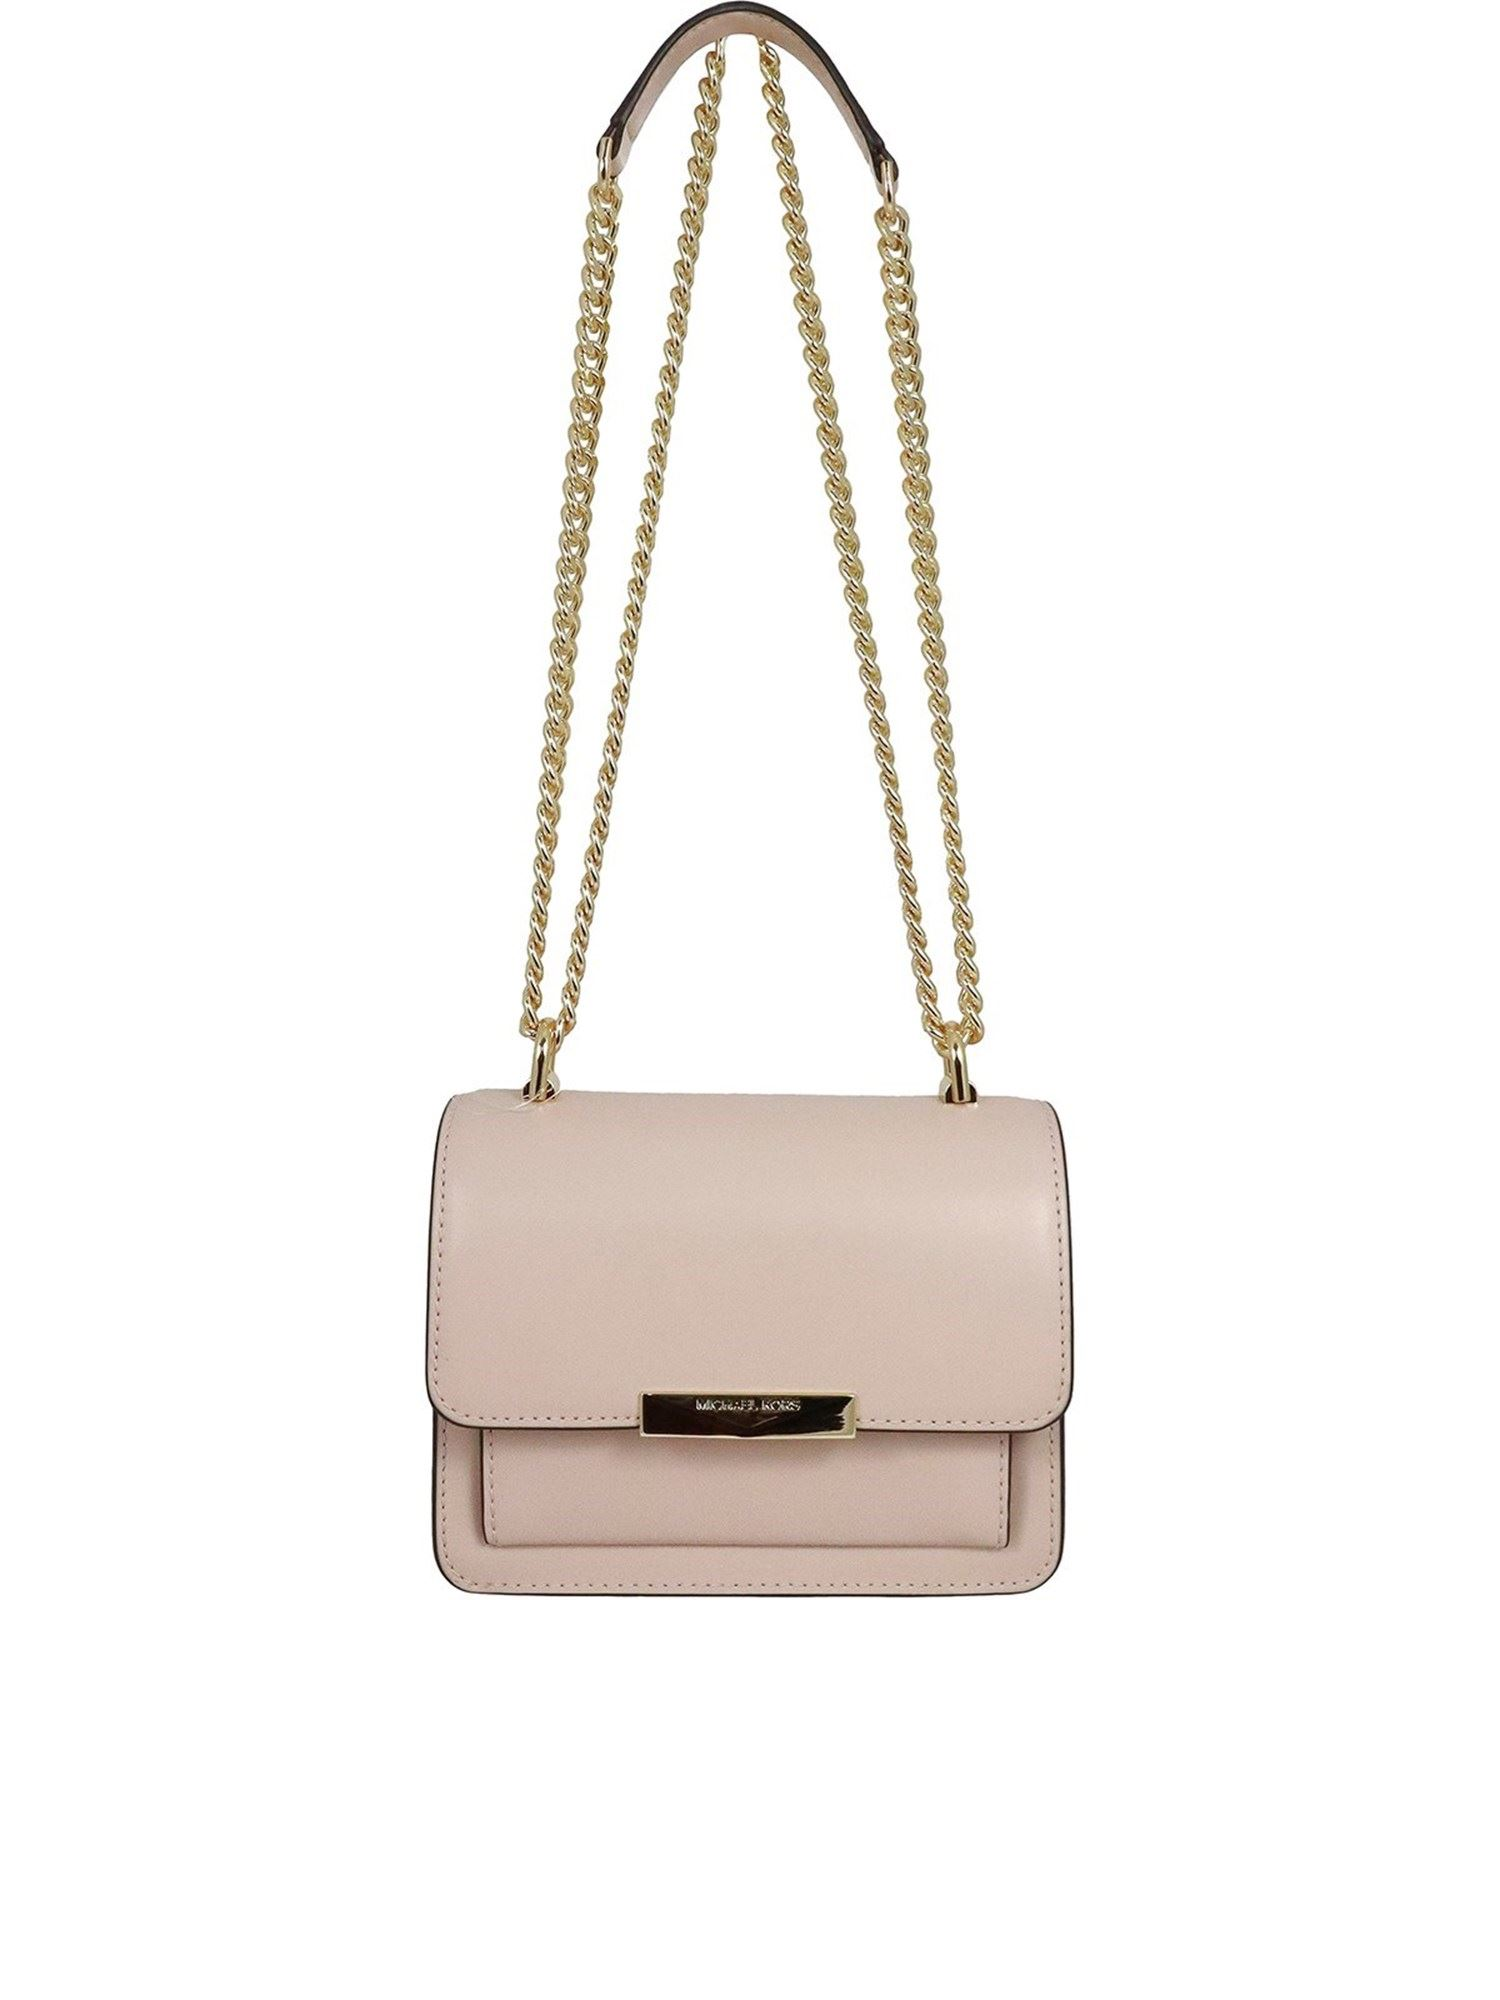 Michael Kors Leathers JADE EXTRA SMALL BAG IN LIGHT PINK